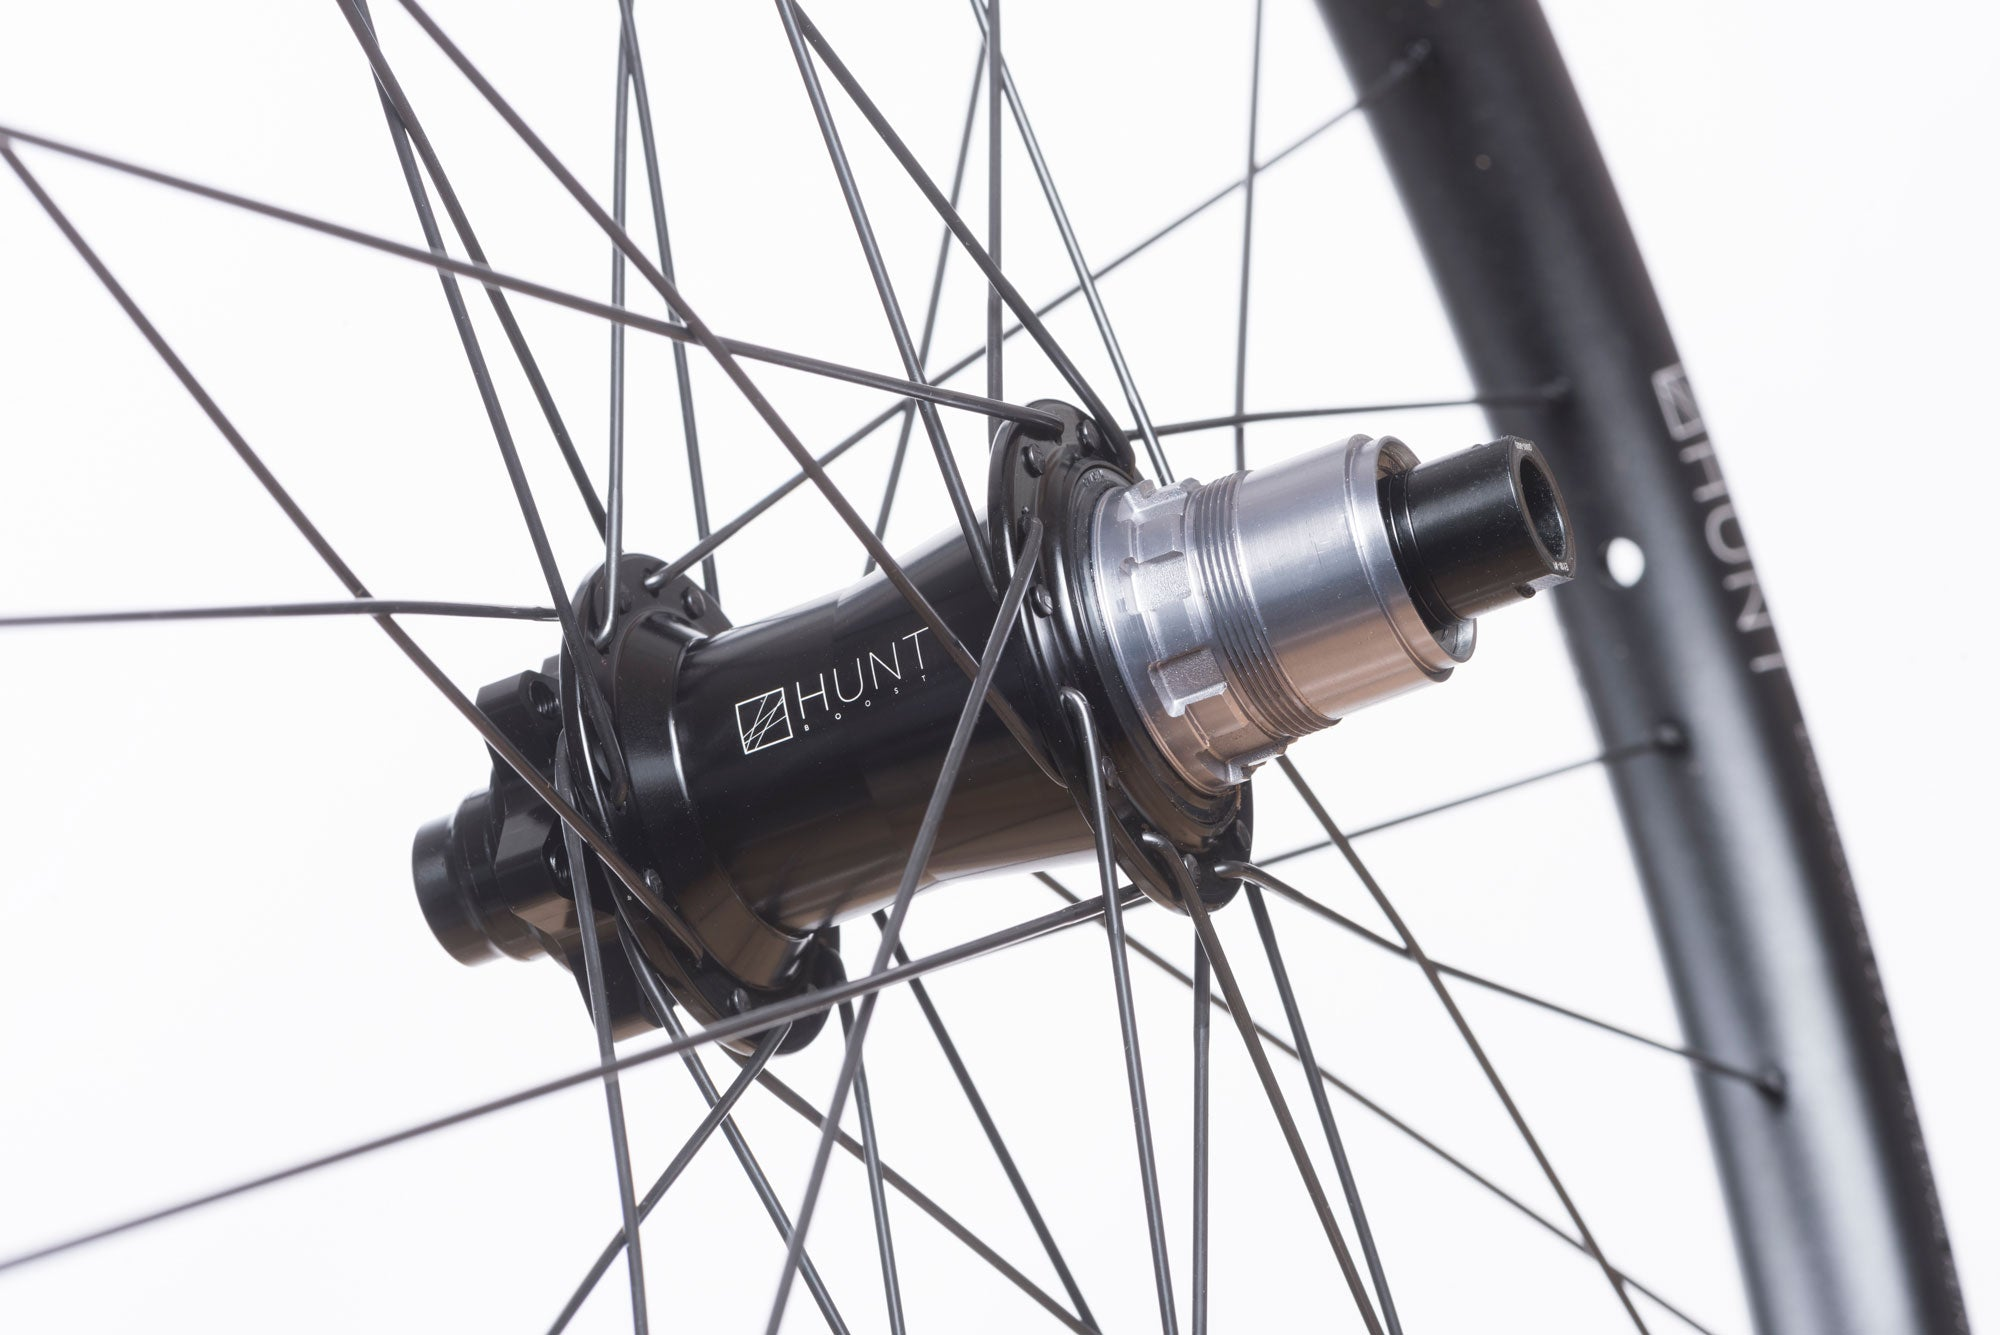 <h1>Rear Hub</h1><i>The demands of modern day Enduro riding are tougher than ever before, so the EnduroWide hubs have been designed with oversized 17mm axles to increase stiffness and bearing durability. On the rear, the Hunt RapidEngage MTB hubs with a fast 5 degree engagement, means you will be able to put the power down straight out of the corners. </li>